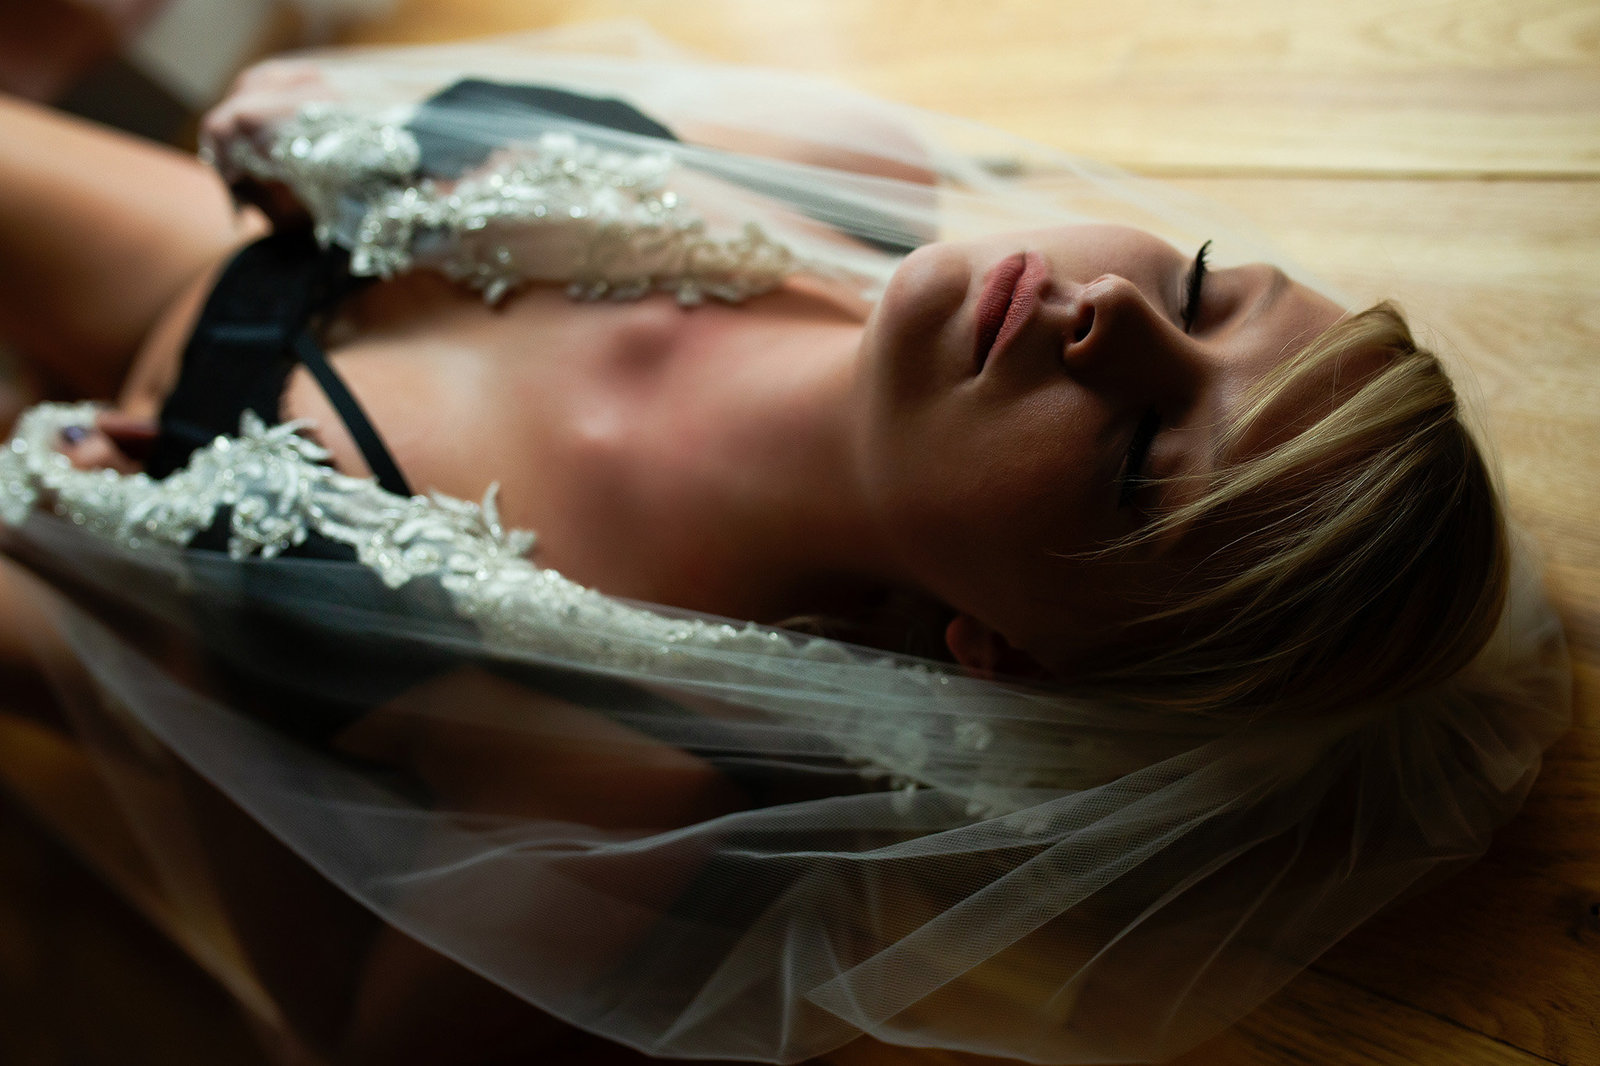 Bridal boudoir session in St. Louis